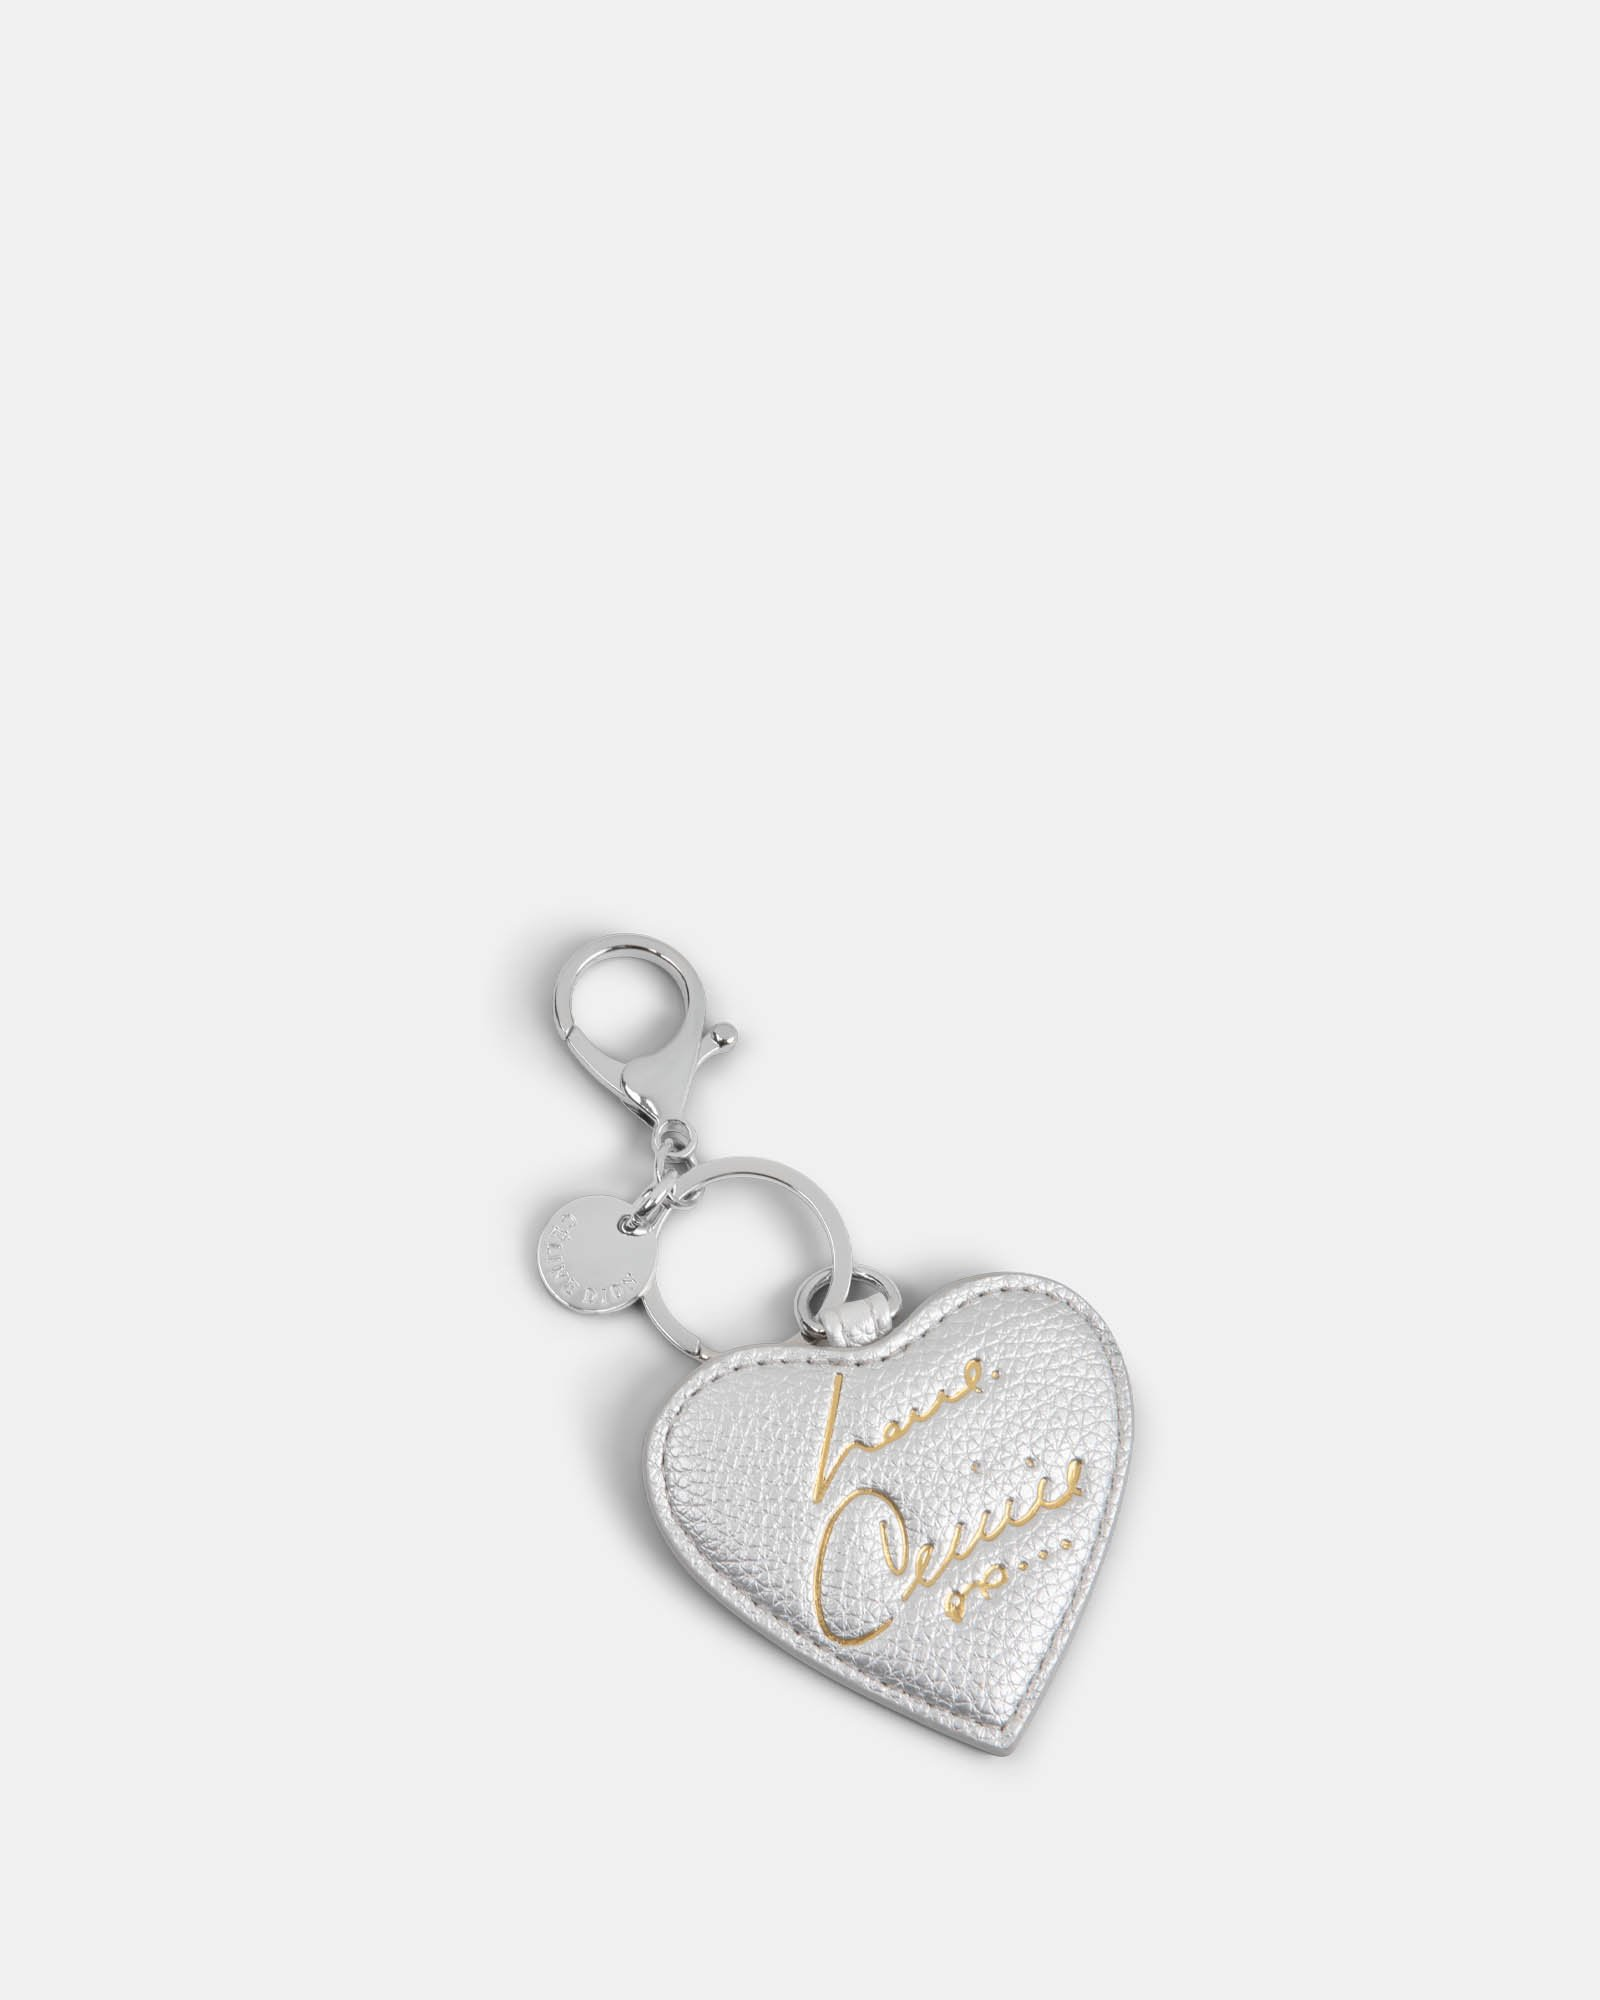 CELINE DION - HEART SHAPED KEY CHAIN - SILVER - Céline Dion - Zoom